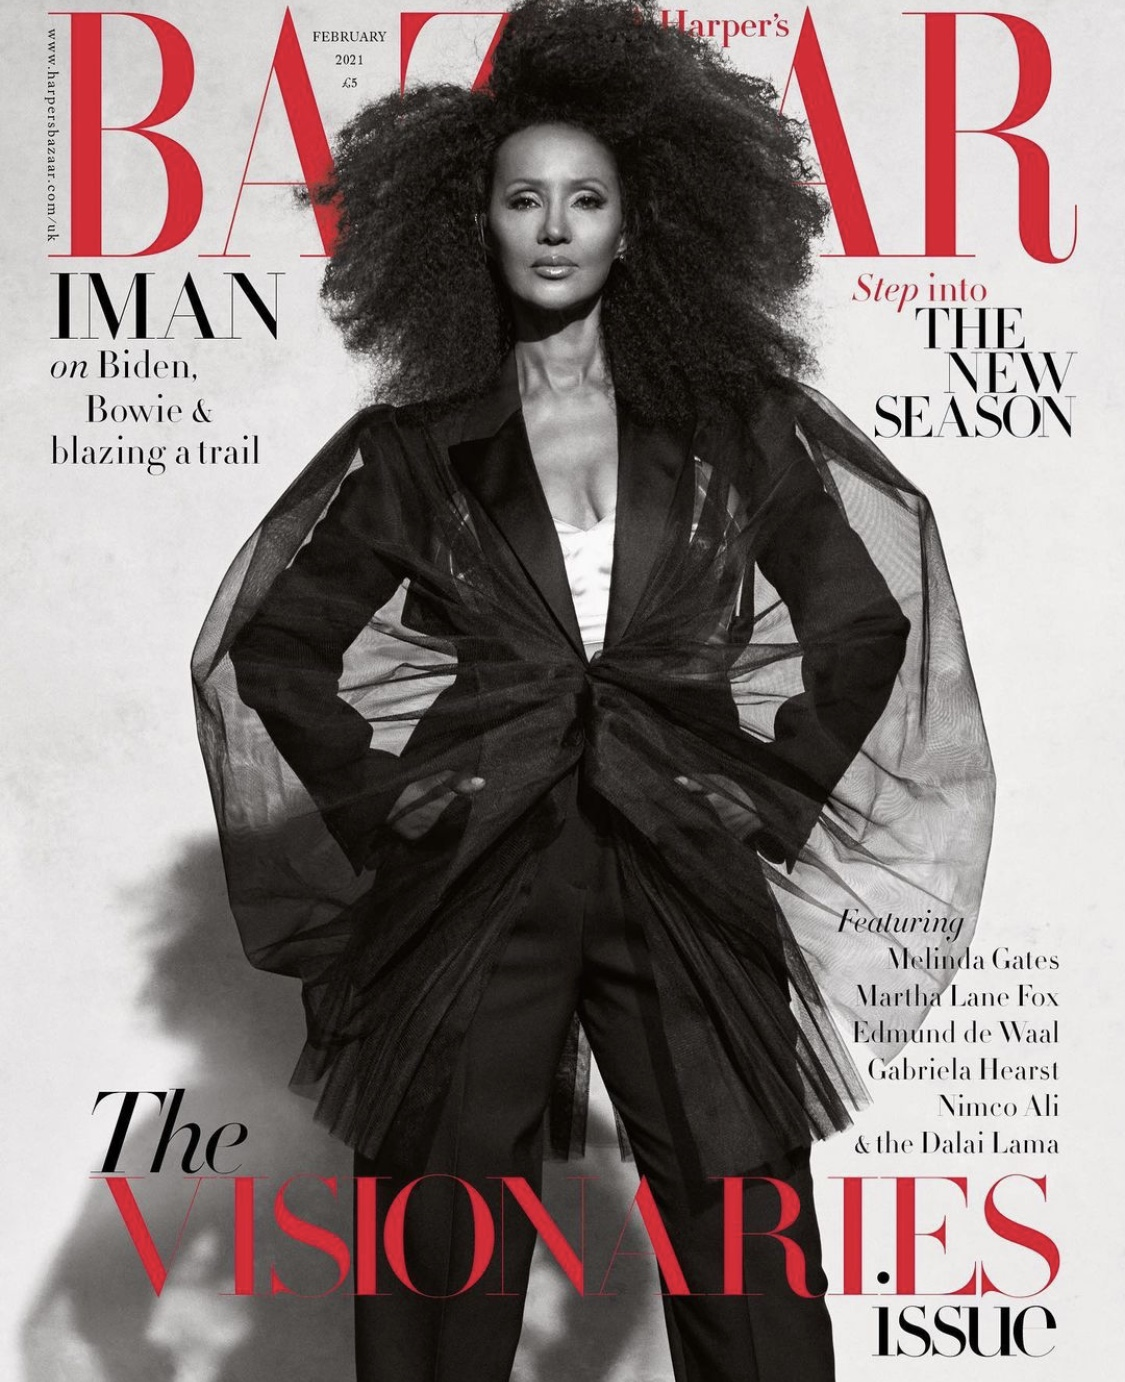 Iman-Harper's-Bazaar-February-issue-David-Bowie-cosmetics